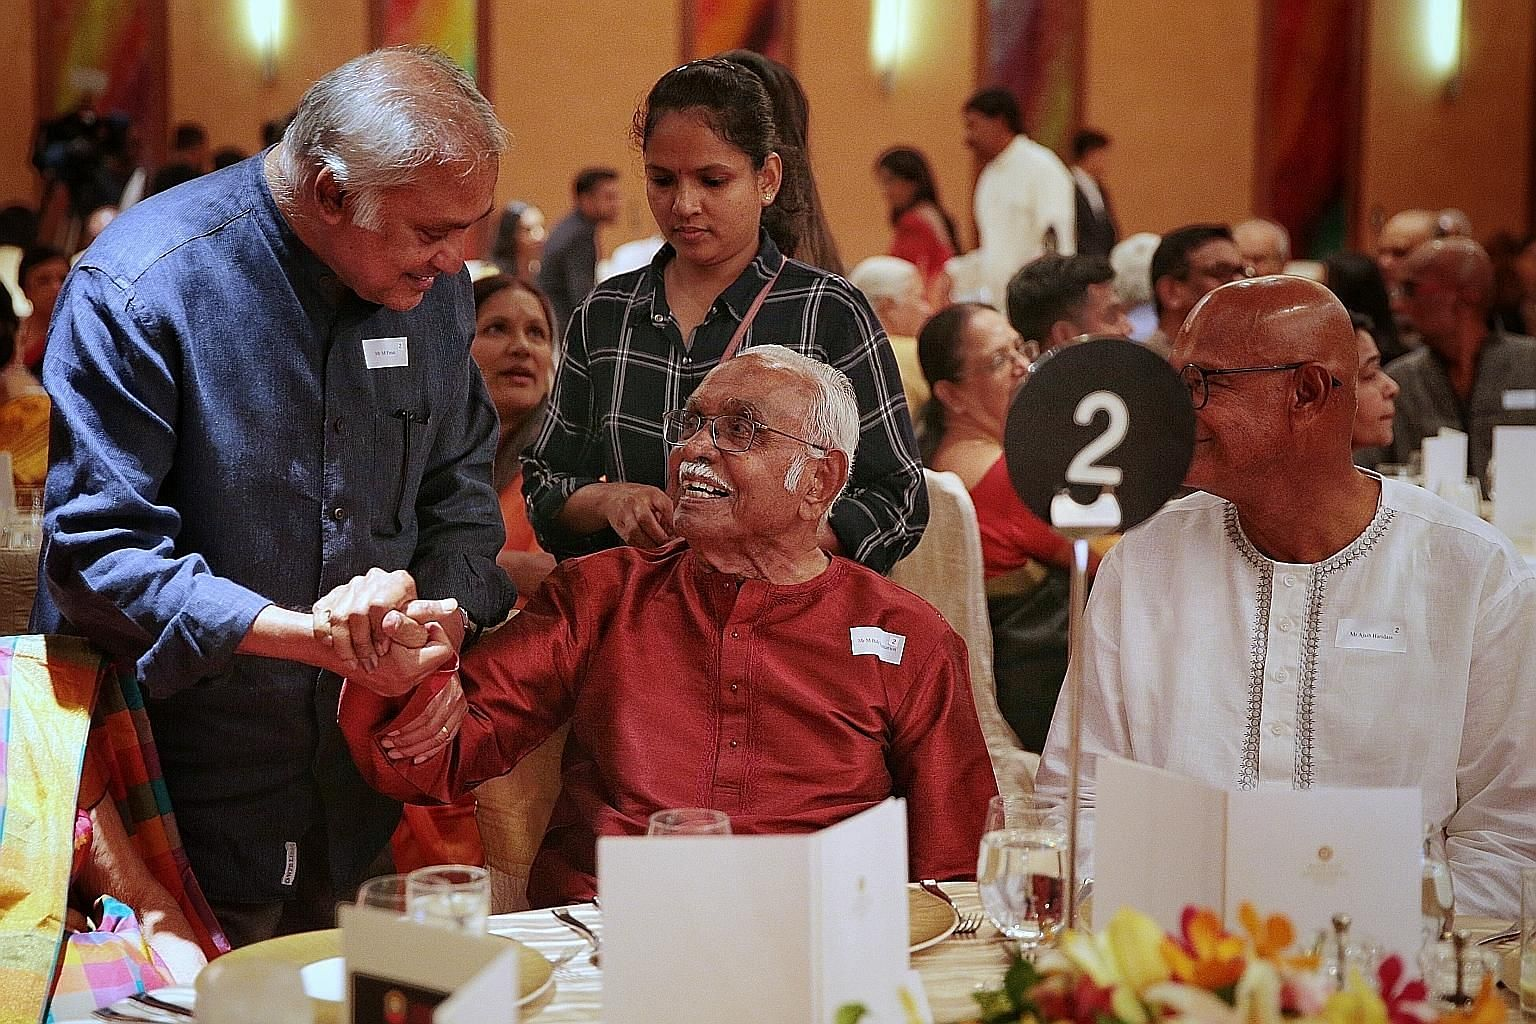 Mr Bala Subramanion, 102, Singapore's first Asian postmaster-general, being greeted by Mr M. Param (left), former vice-chairman of the Hindu Endowments Board, during last night's dinner at the Marina Mandarin hotel to mark the board's 50th anniversar